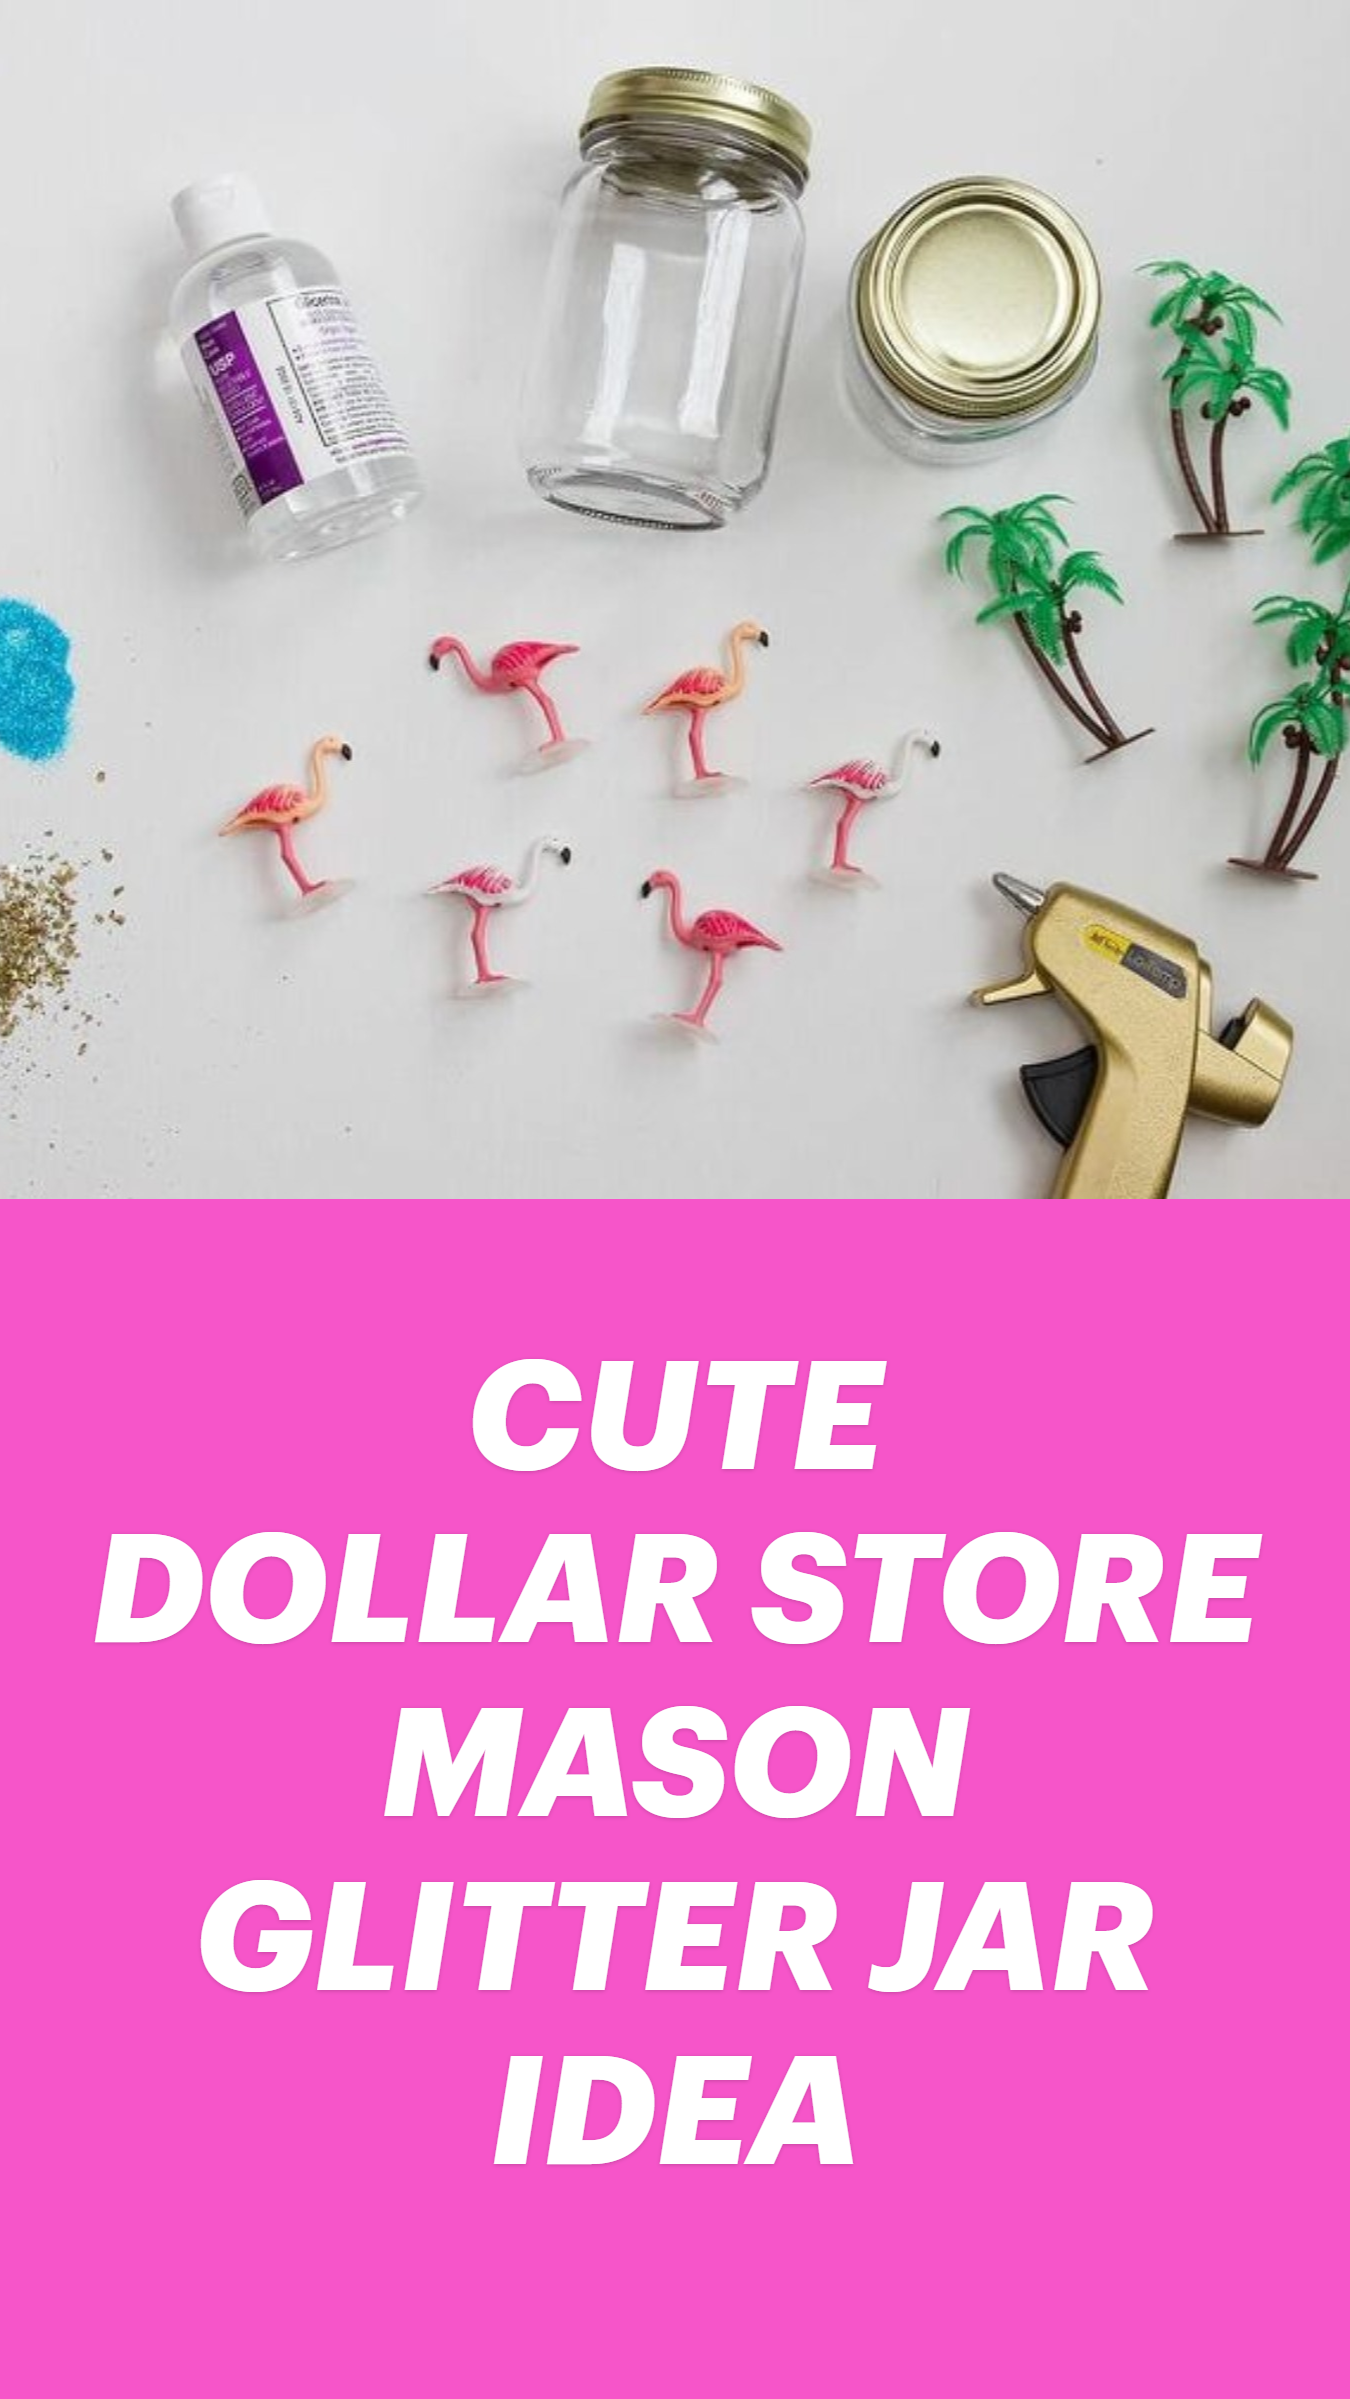 CUTE DOLLAR STORE MASON CRAFT IDEA